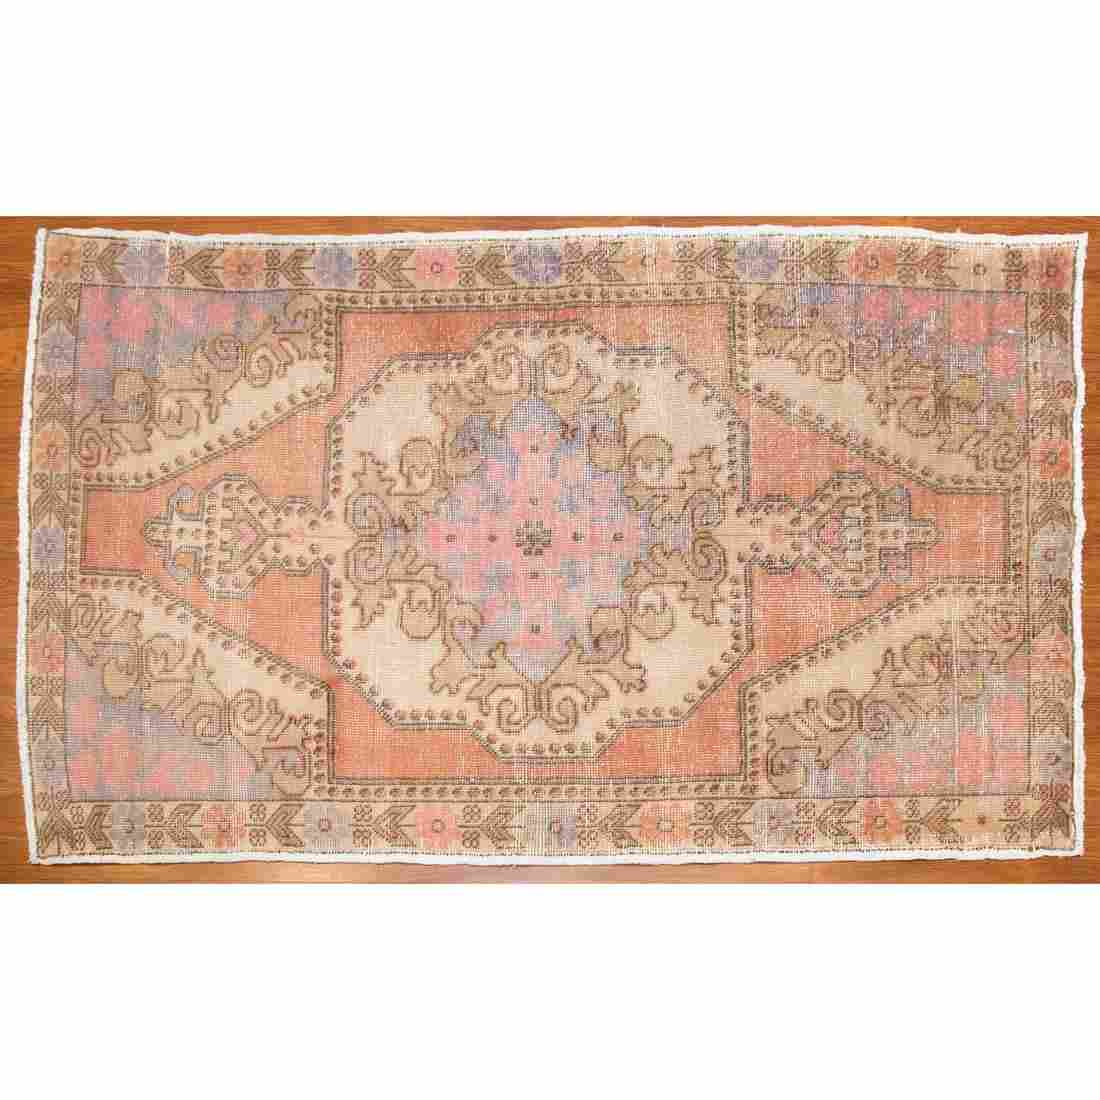 Semi-Antique Oushak Rug, Turkey, 4.6 x 7.3